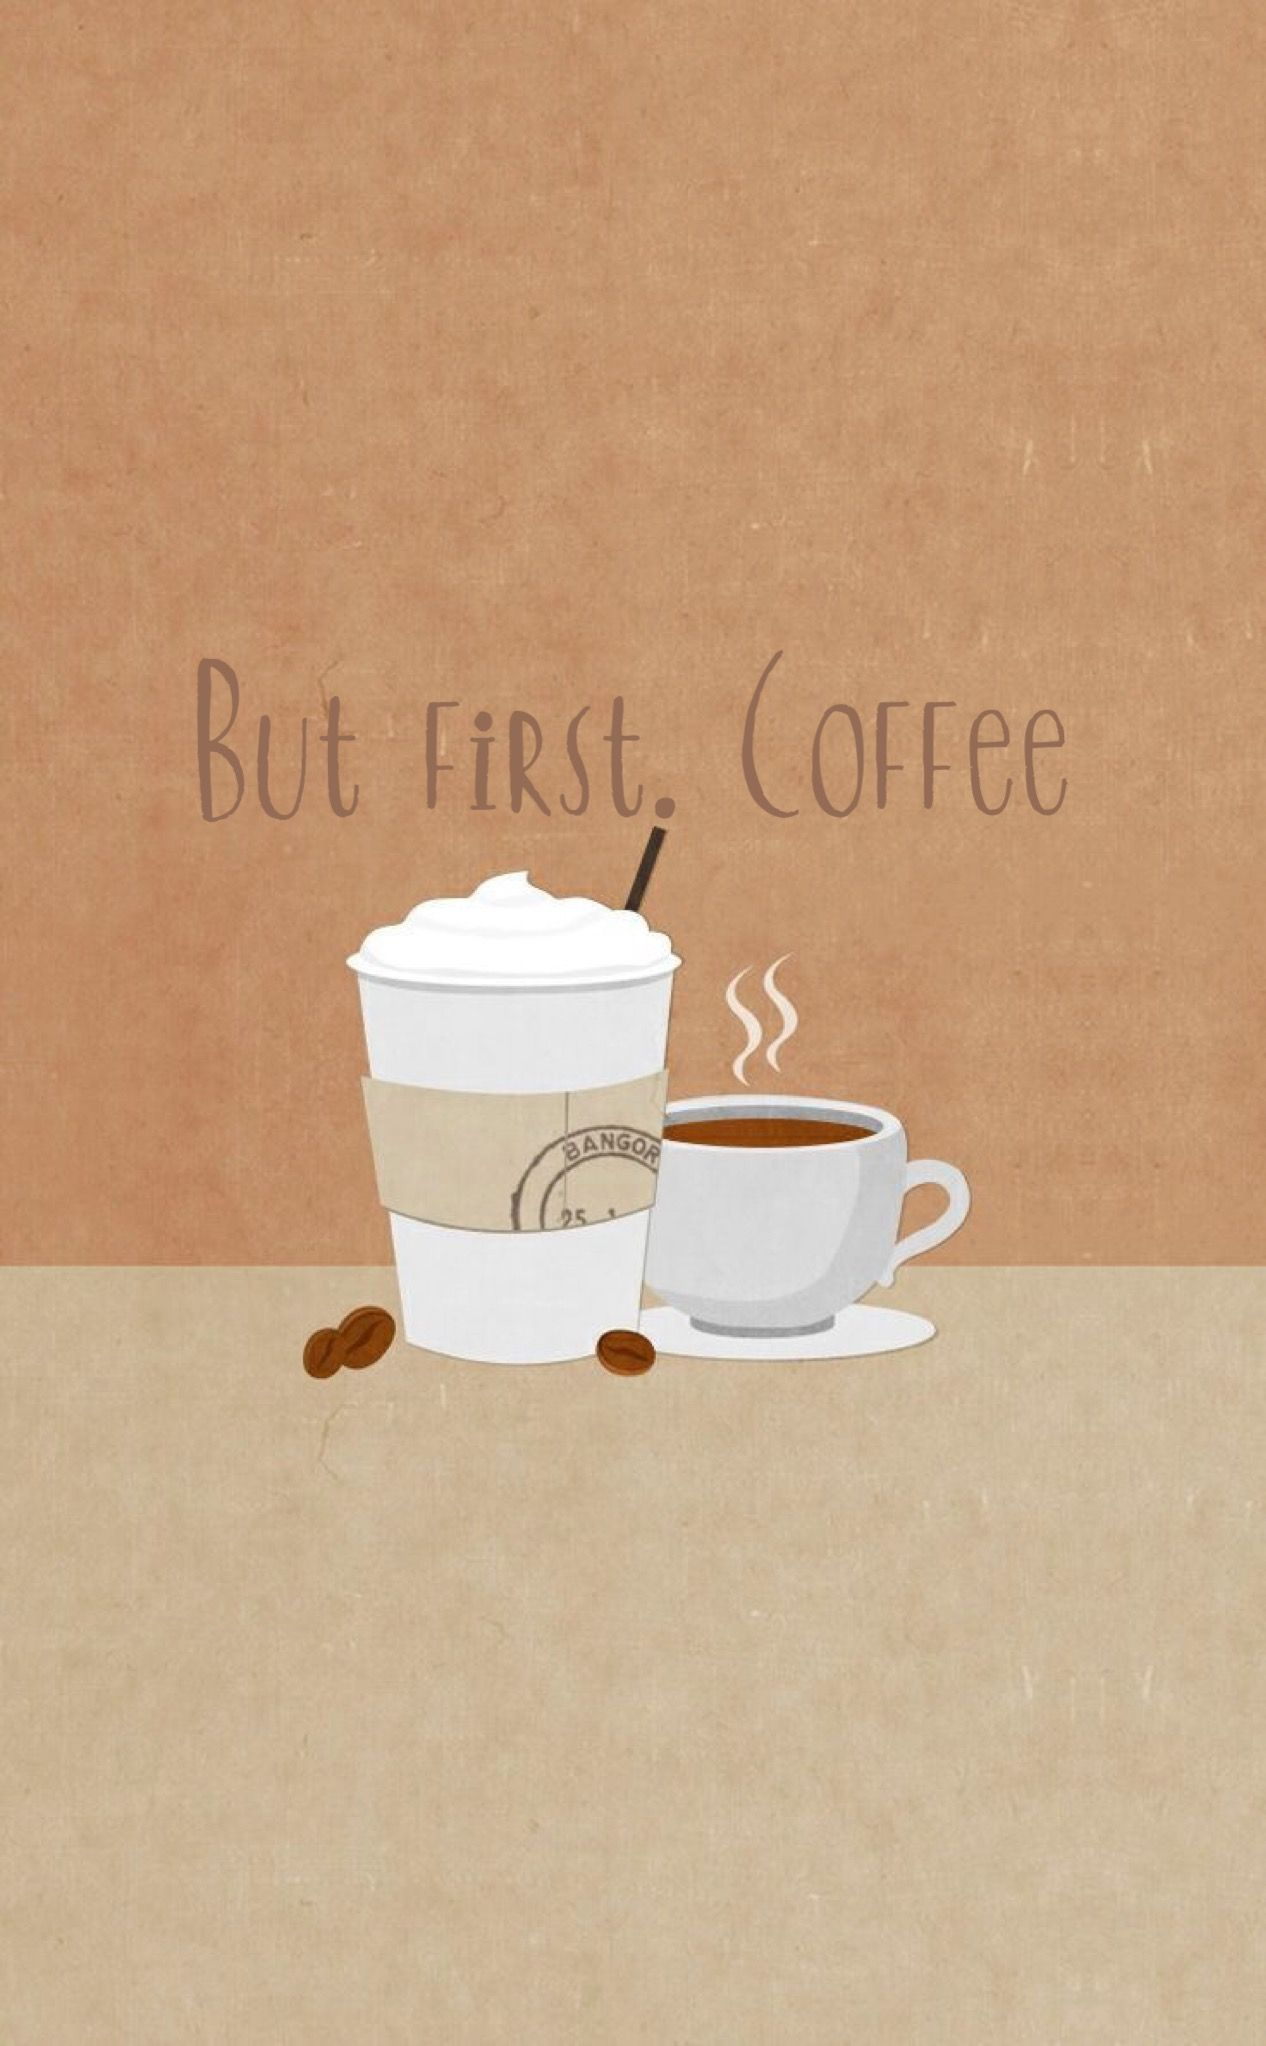 Pin By Alyssa Tabor On Wallpapers Coffee Wallpaper Iphone Iphone Wallpaper Vintage Pretty Wallpaper Iphone